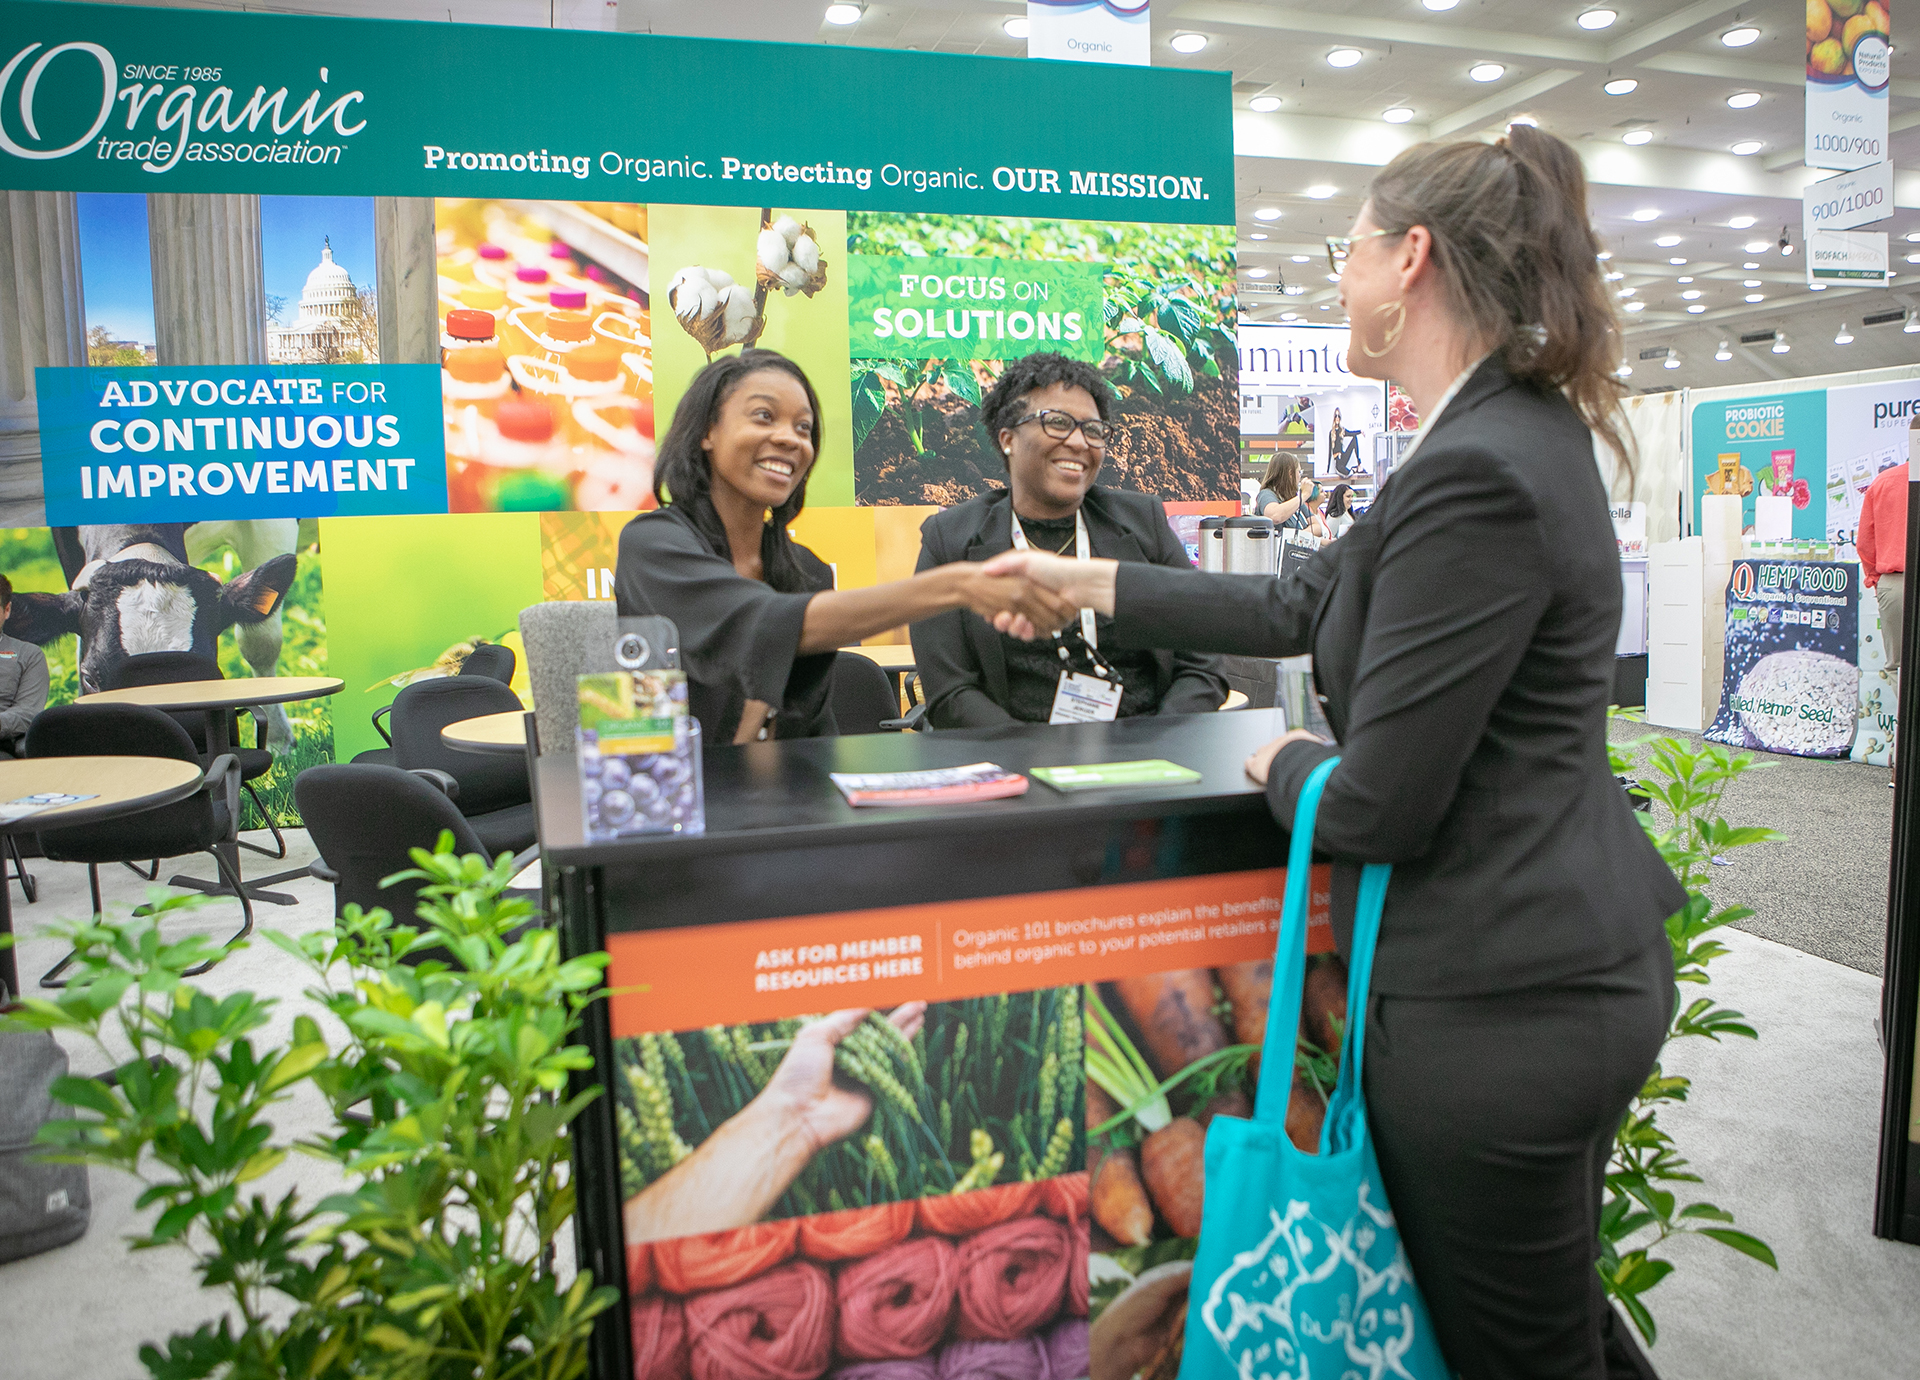 BIOFACH America Review 2019 - Exhibitors and visitors